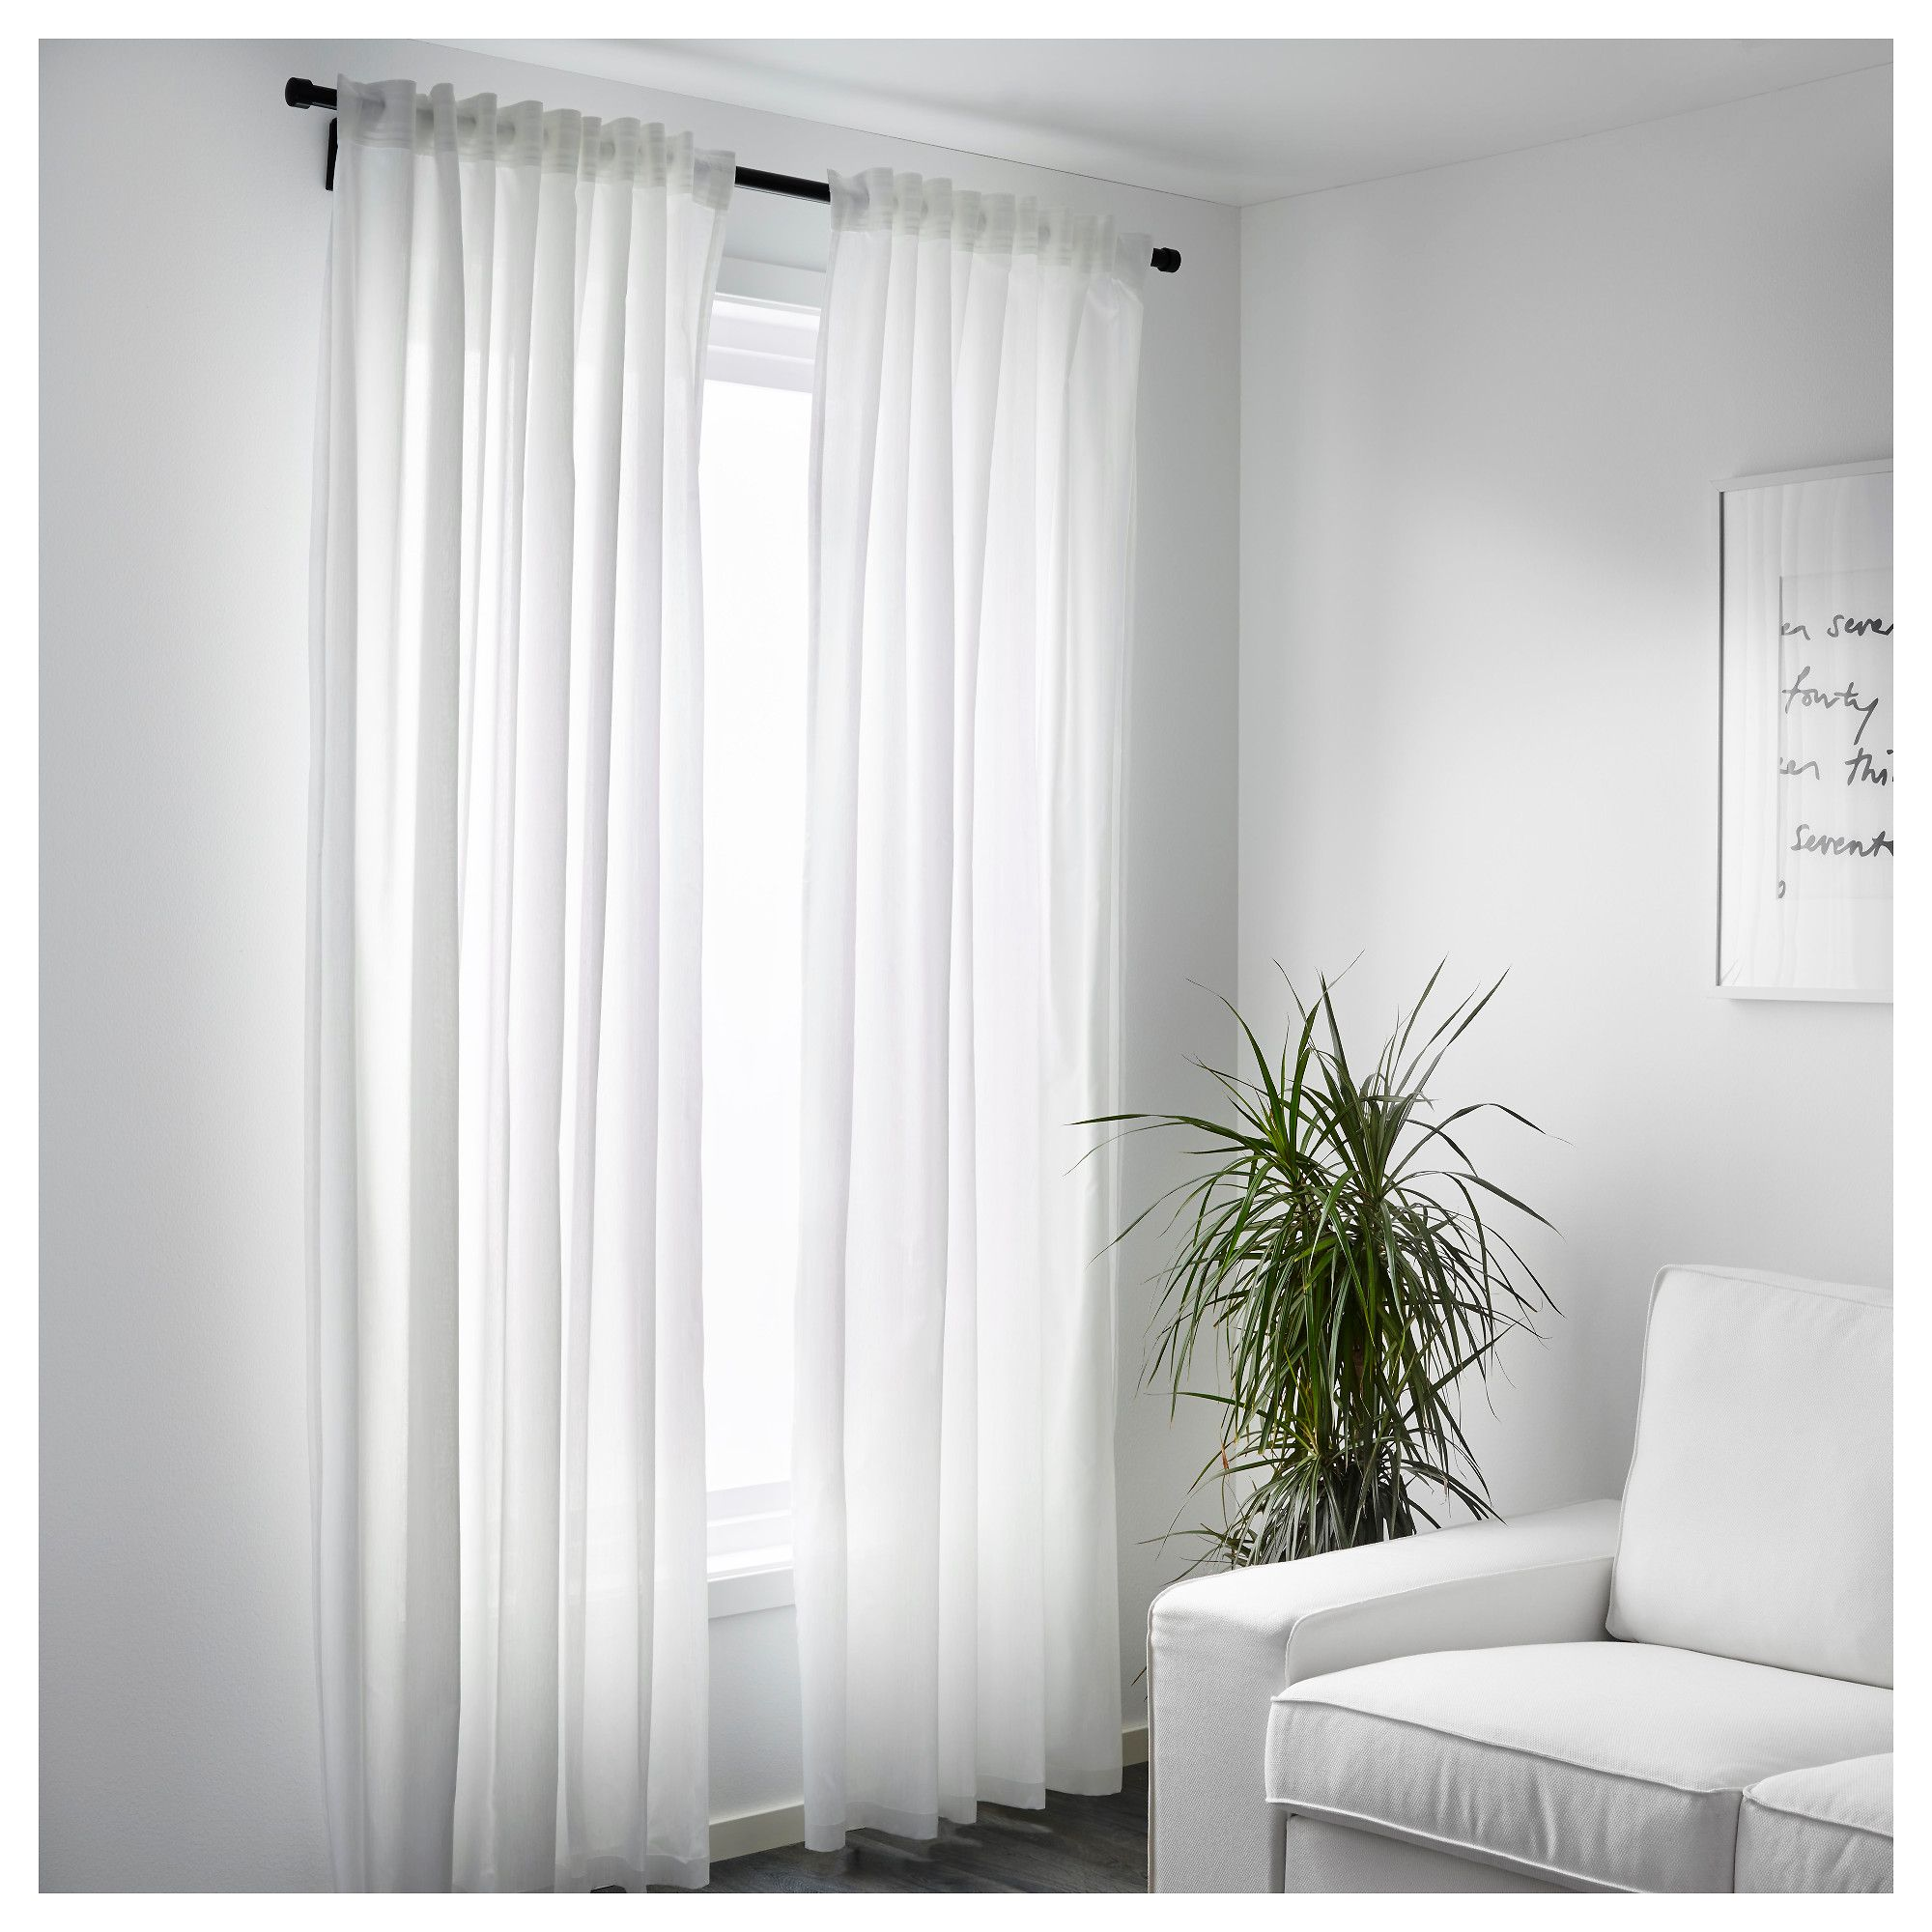 Ikea Gardinen Schlafzimmer Ikea Vivan Curtains 1 Pair White Products In 2018 Pinterest